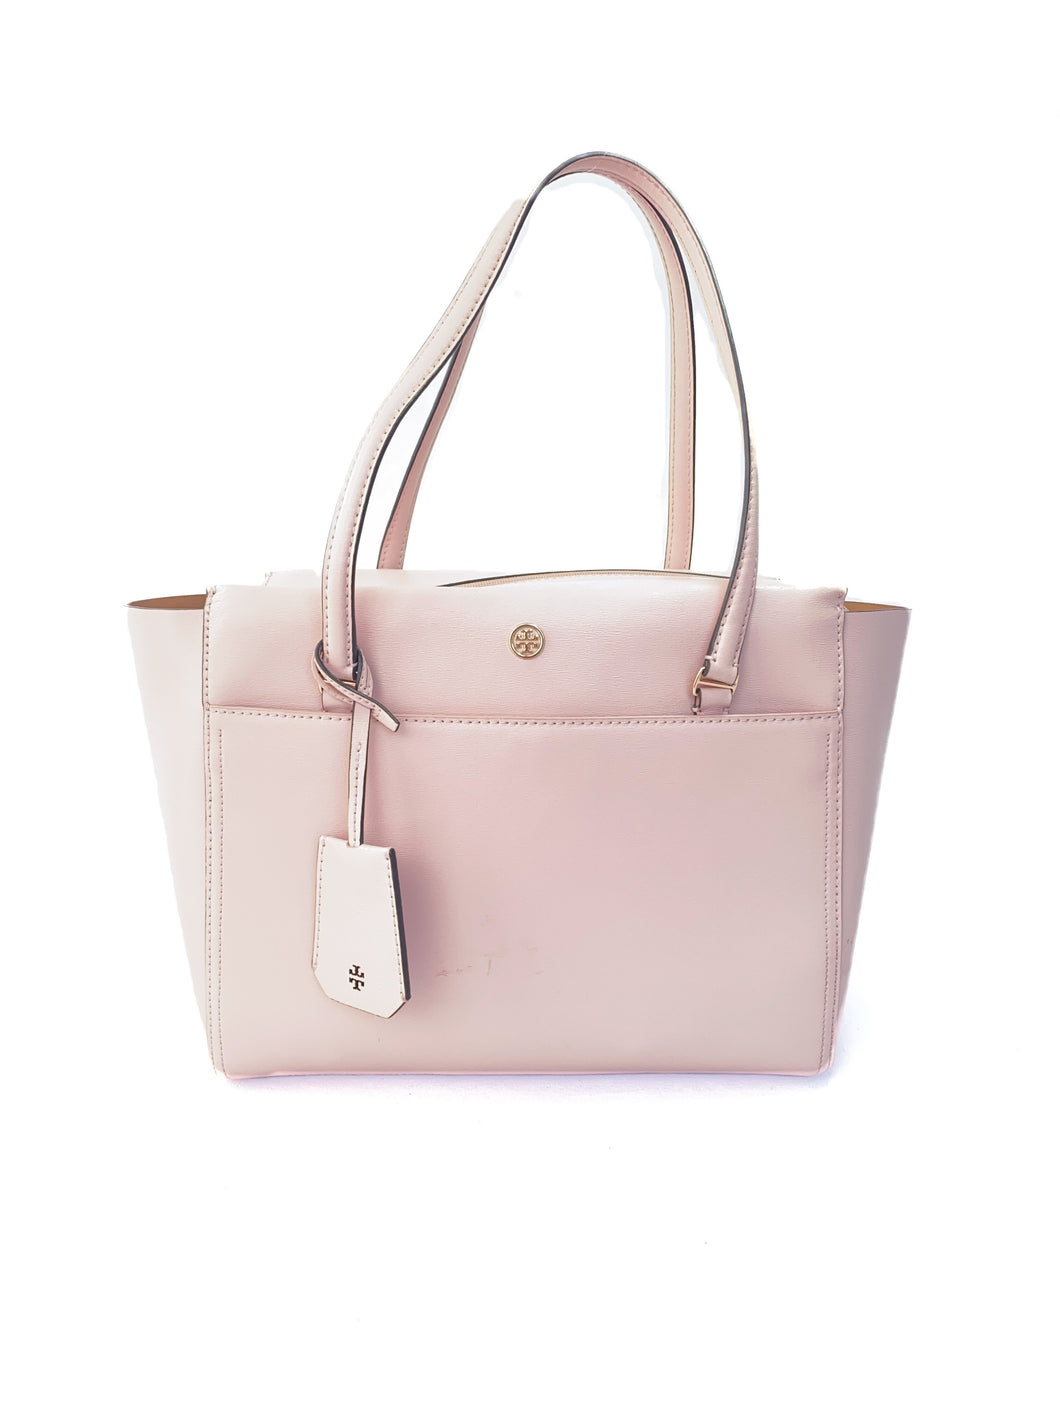 Tory Burch light pink leather tote